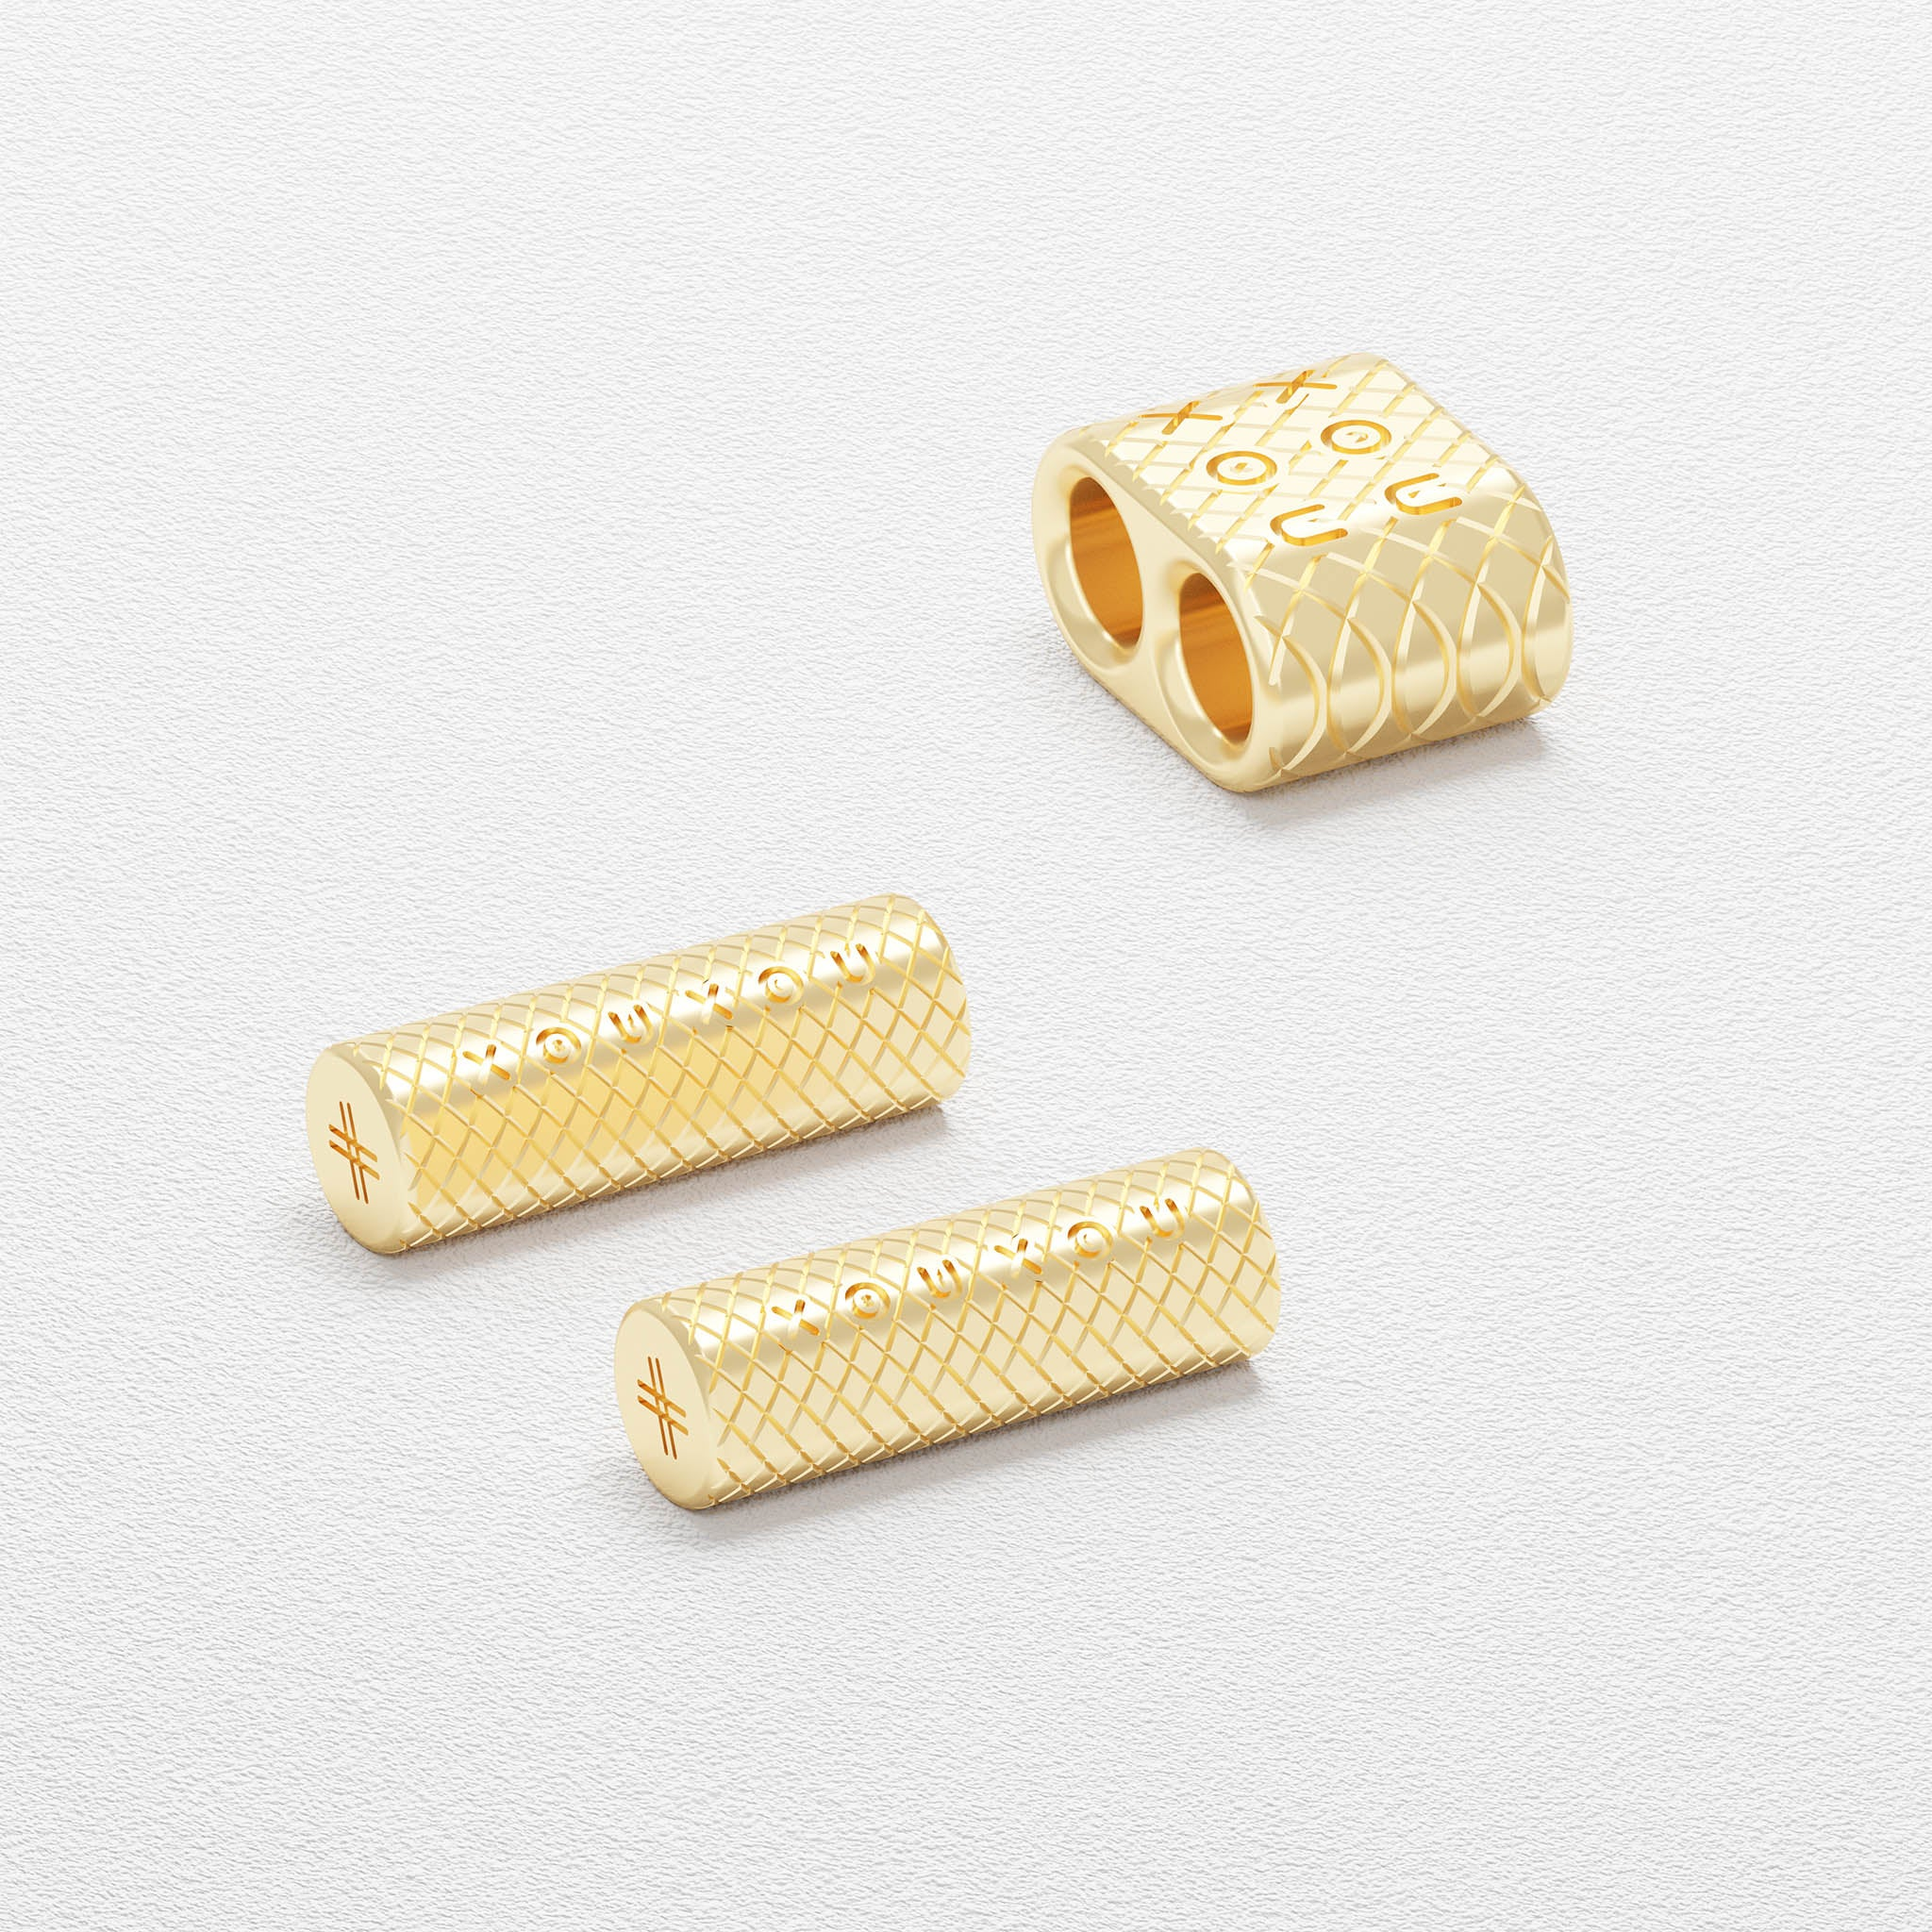 Glossy Gold metal parts for Modular Ropes by XOUXOU